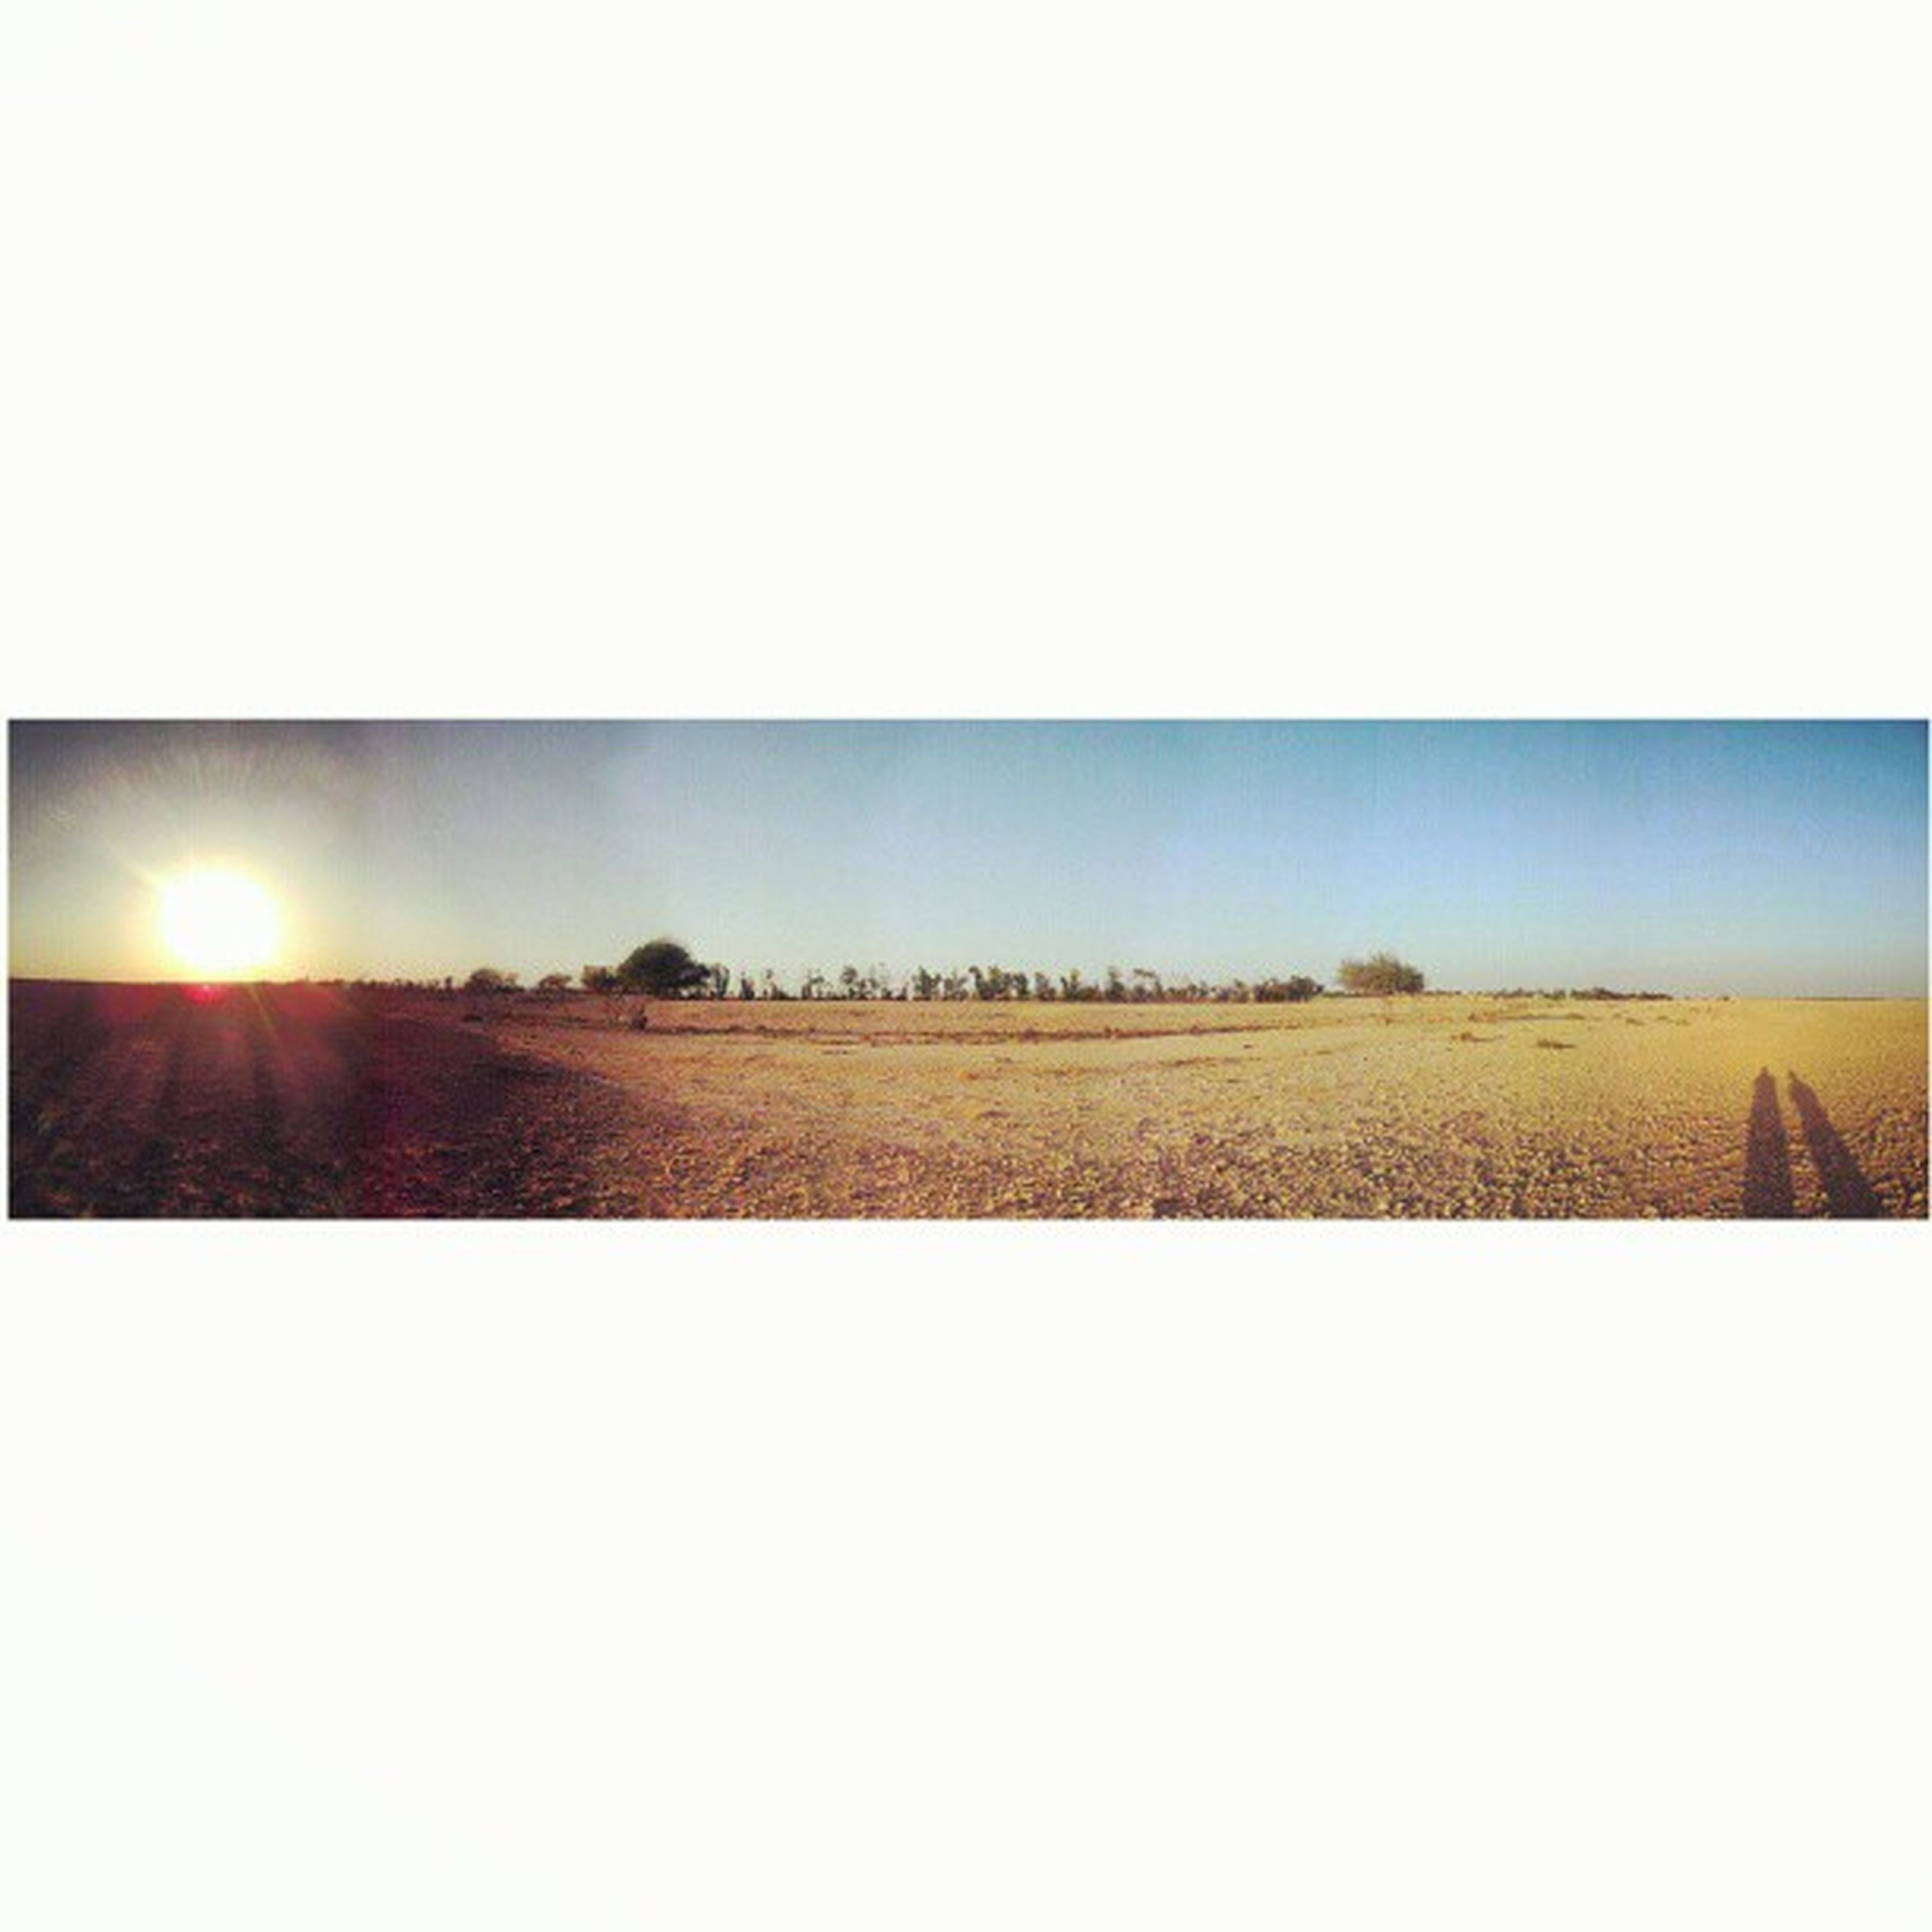 copy space, clear sky, field, landscape, tranquil scene, tranquility, transfer print, scenics, beauty in nature, nature, sunset, auto post production filter, sky, sunlight, rural scene, horizon over land, agriculture, sun, outdoors, no people